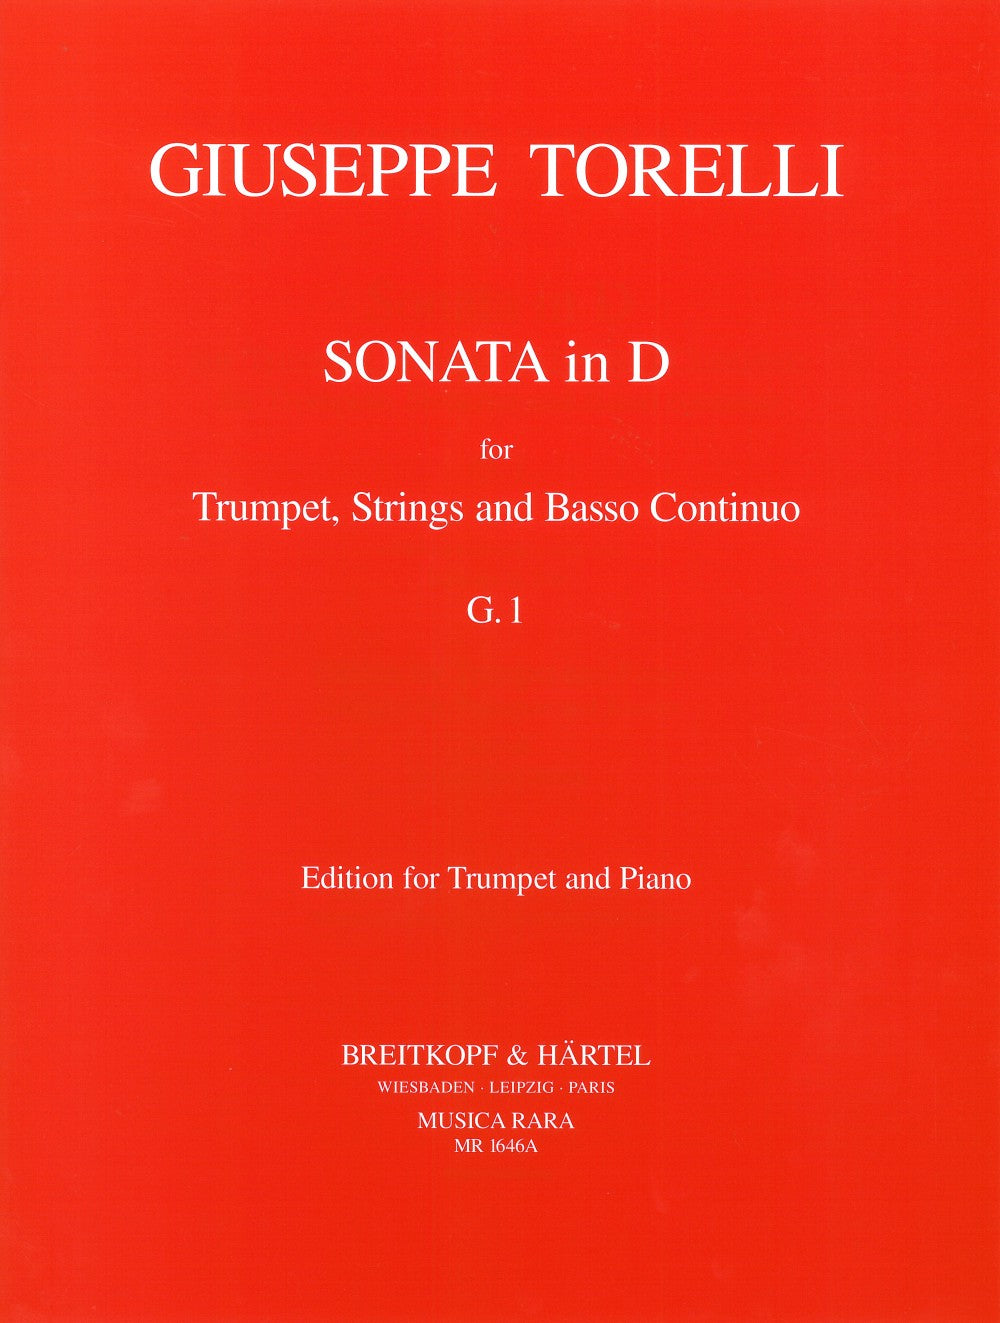 Torelli: Trumpet Sonata in D Major, G.1